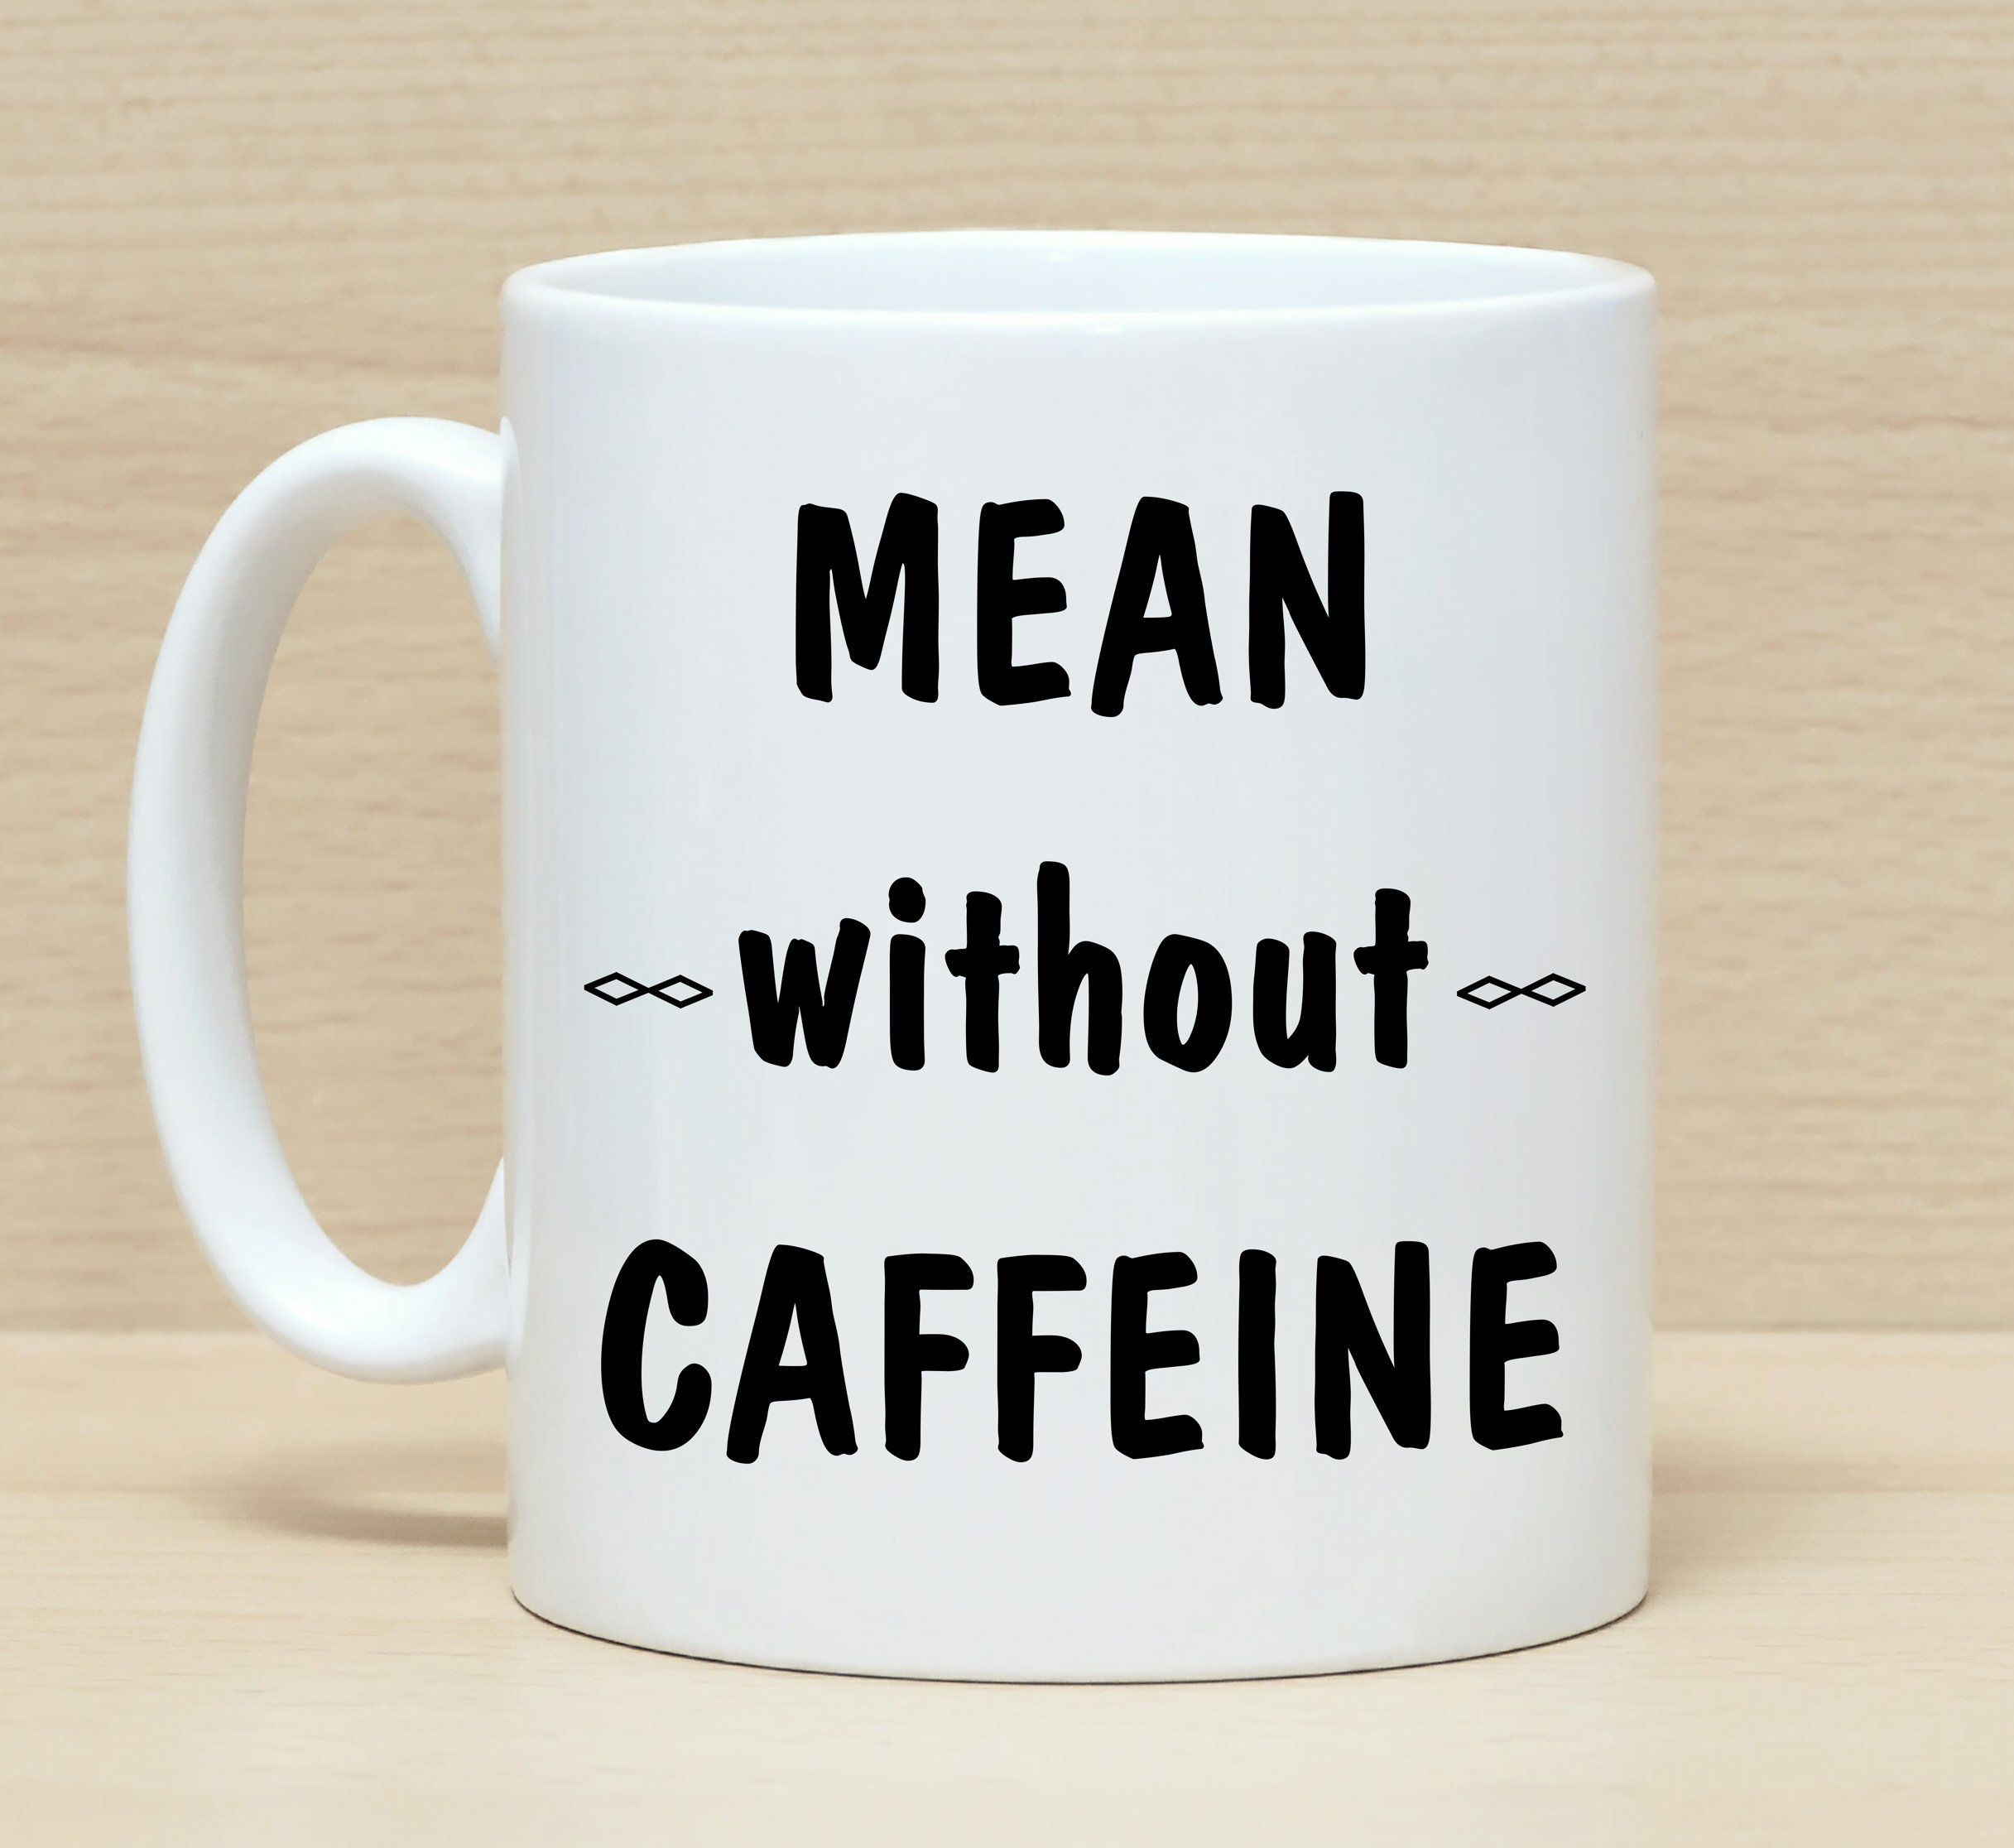 Funny Coffee Mug Mug With Saying Mean Without Caffeine Funny